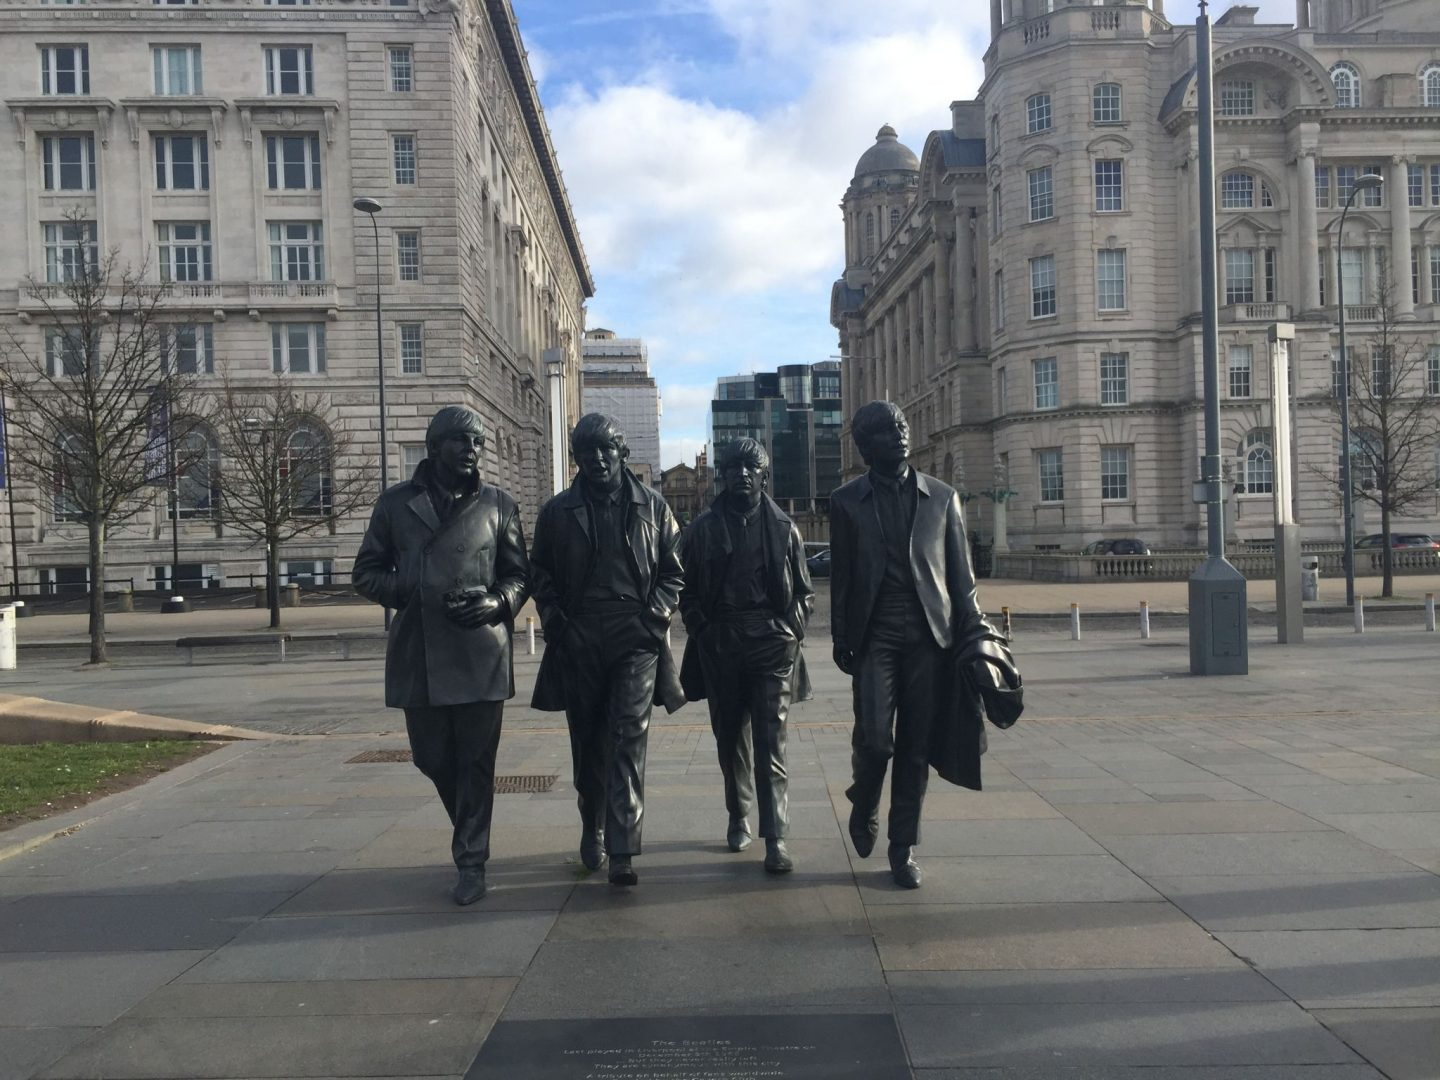 Beatles Statue, Liverpool waterfront. 36 hours in Liverpool